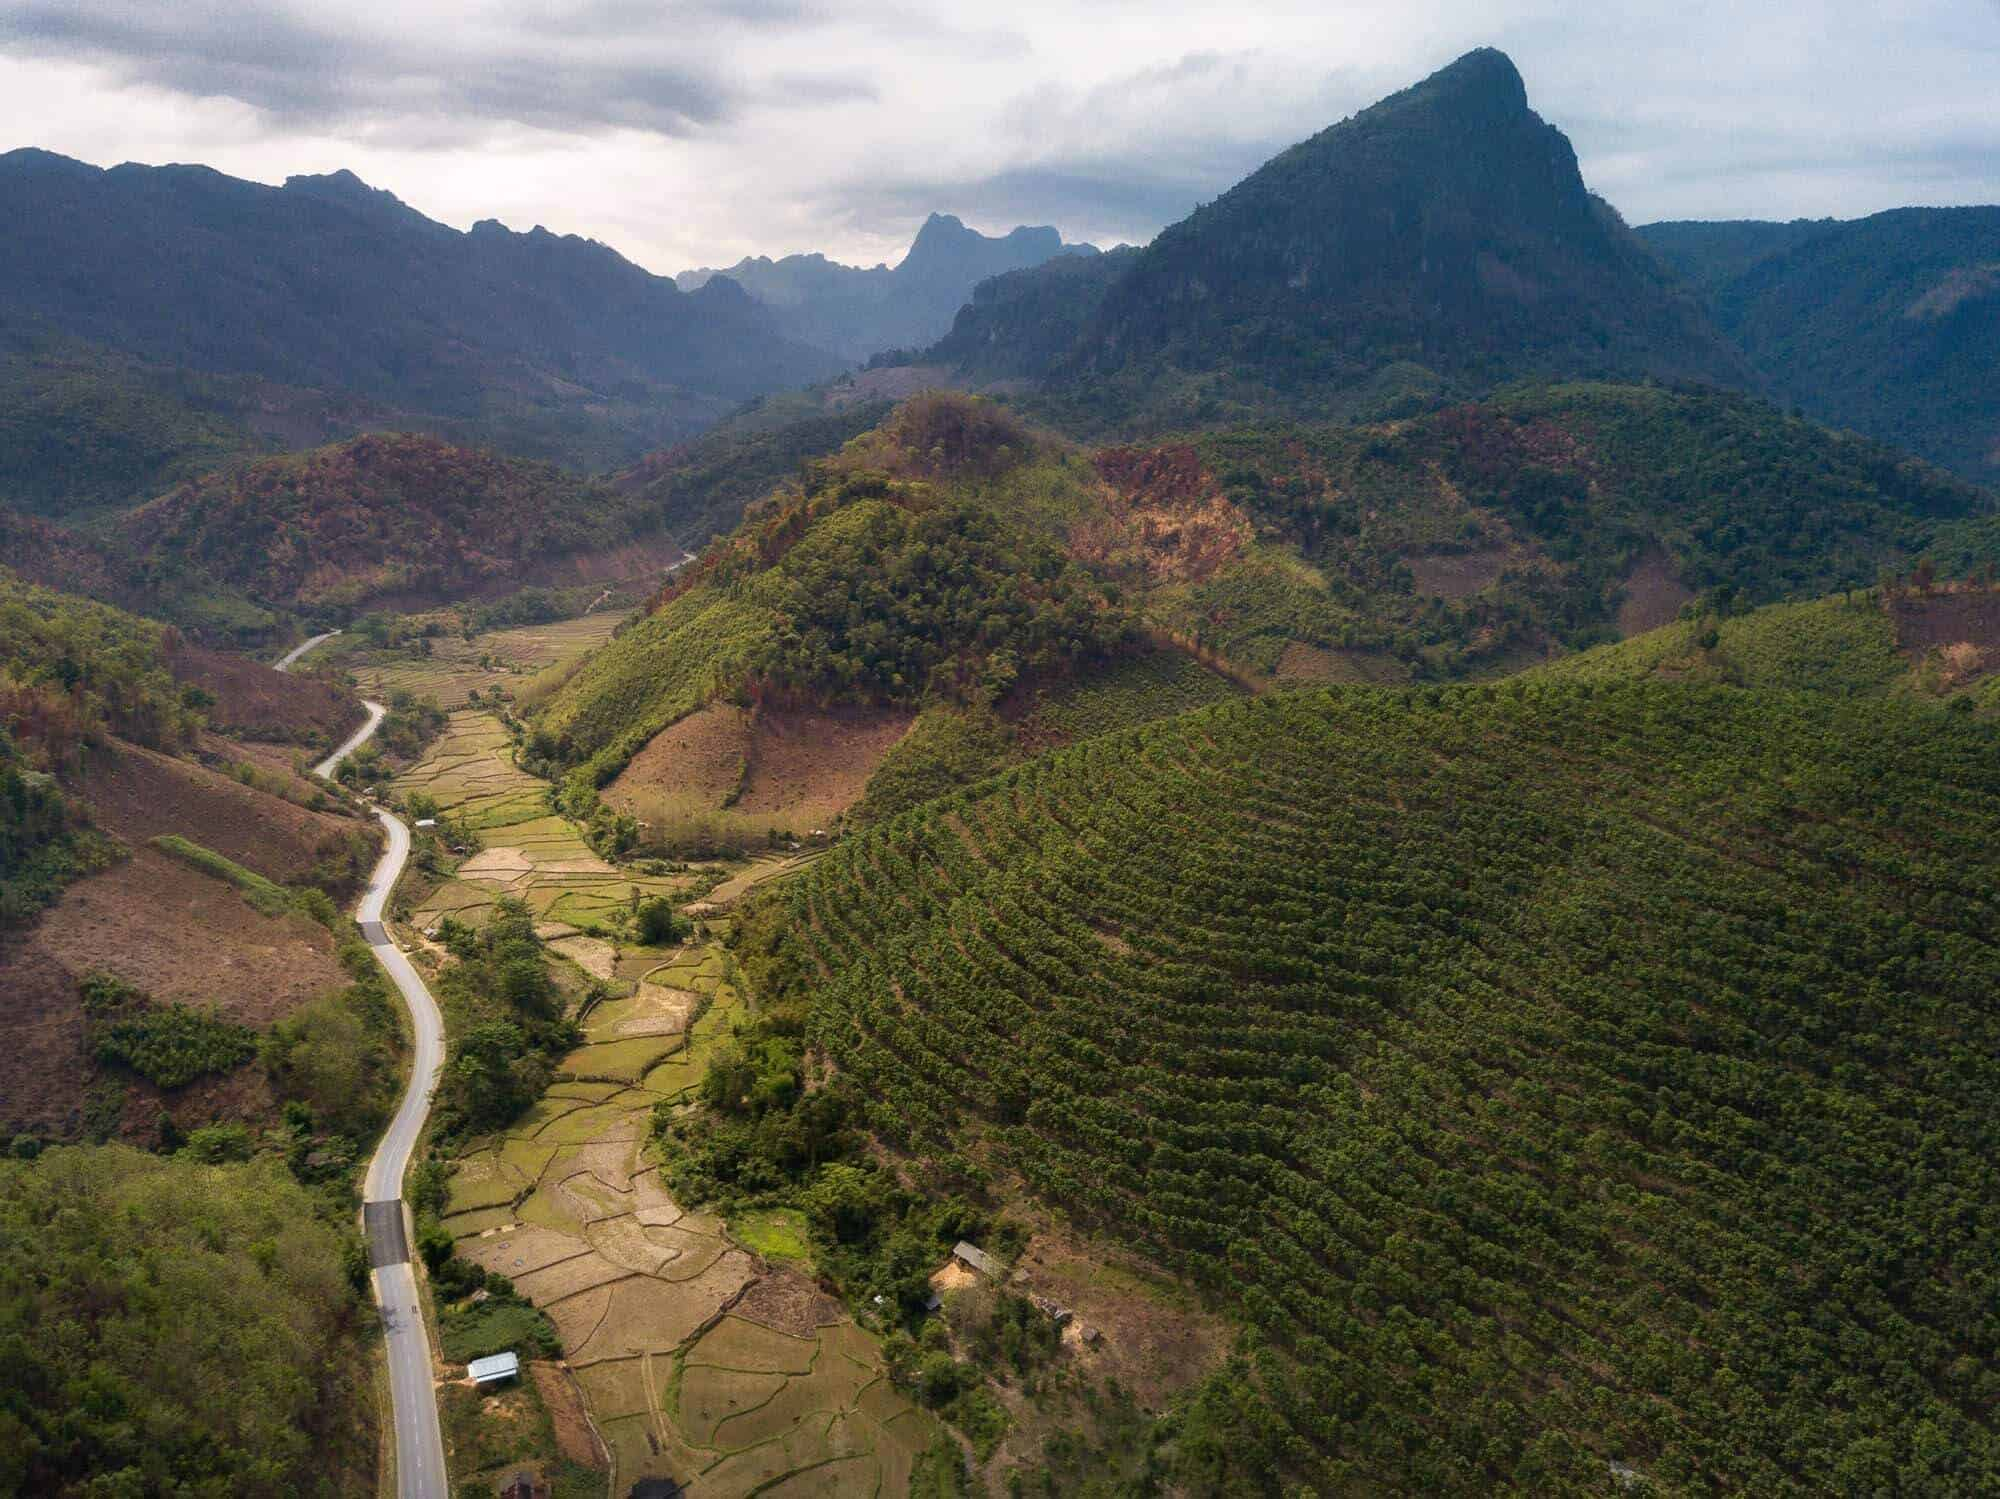 A drone photo of Route 4 and the stunning Laos countryside